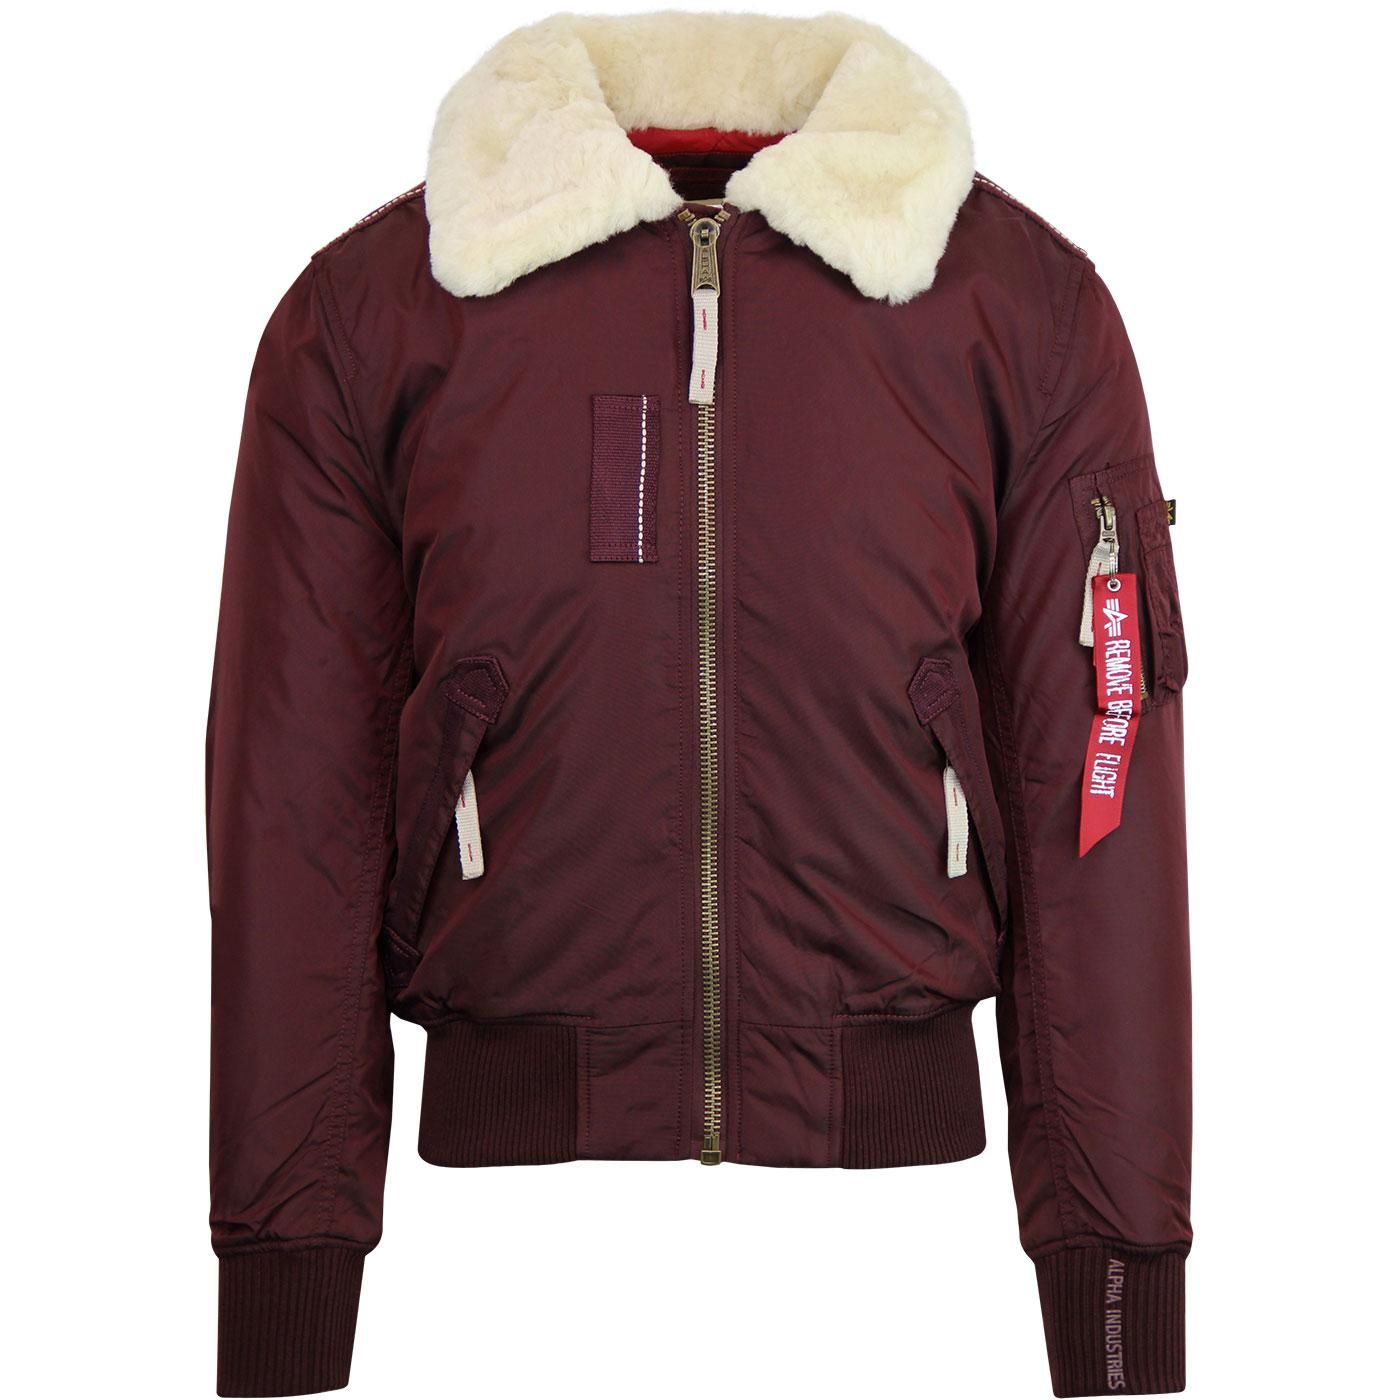 Injector III ALPHA INDUSTRIES Flight Jacket MAROON